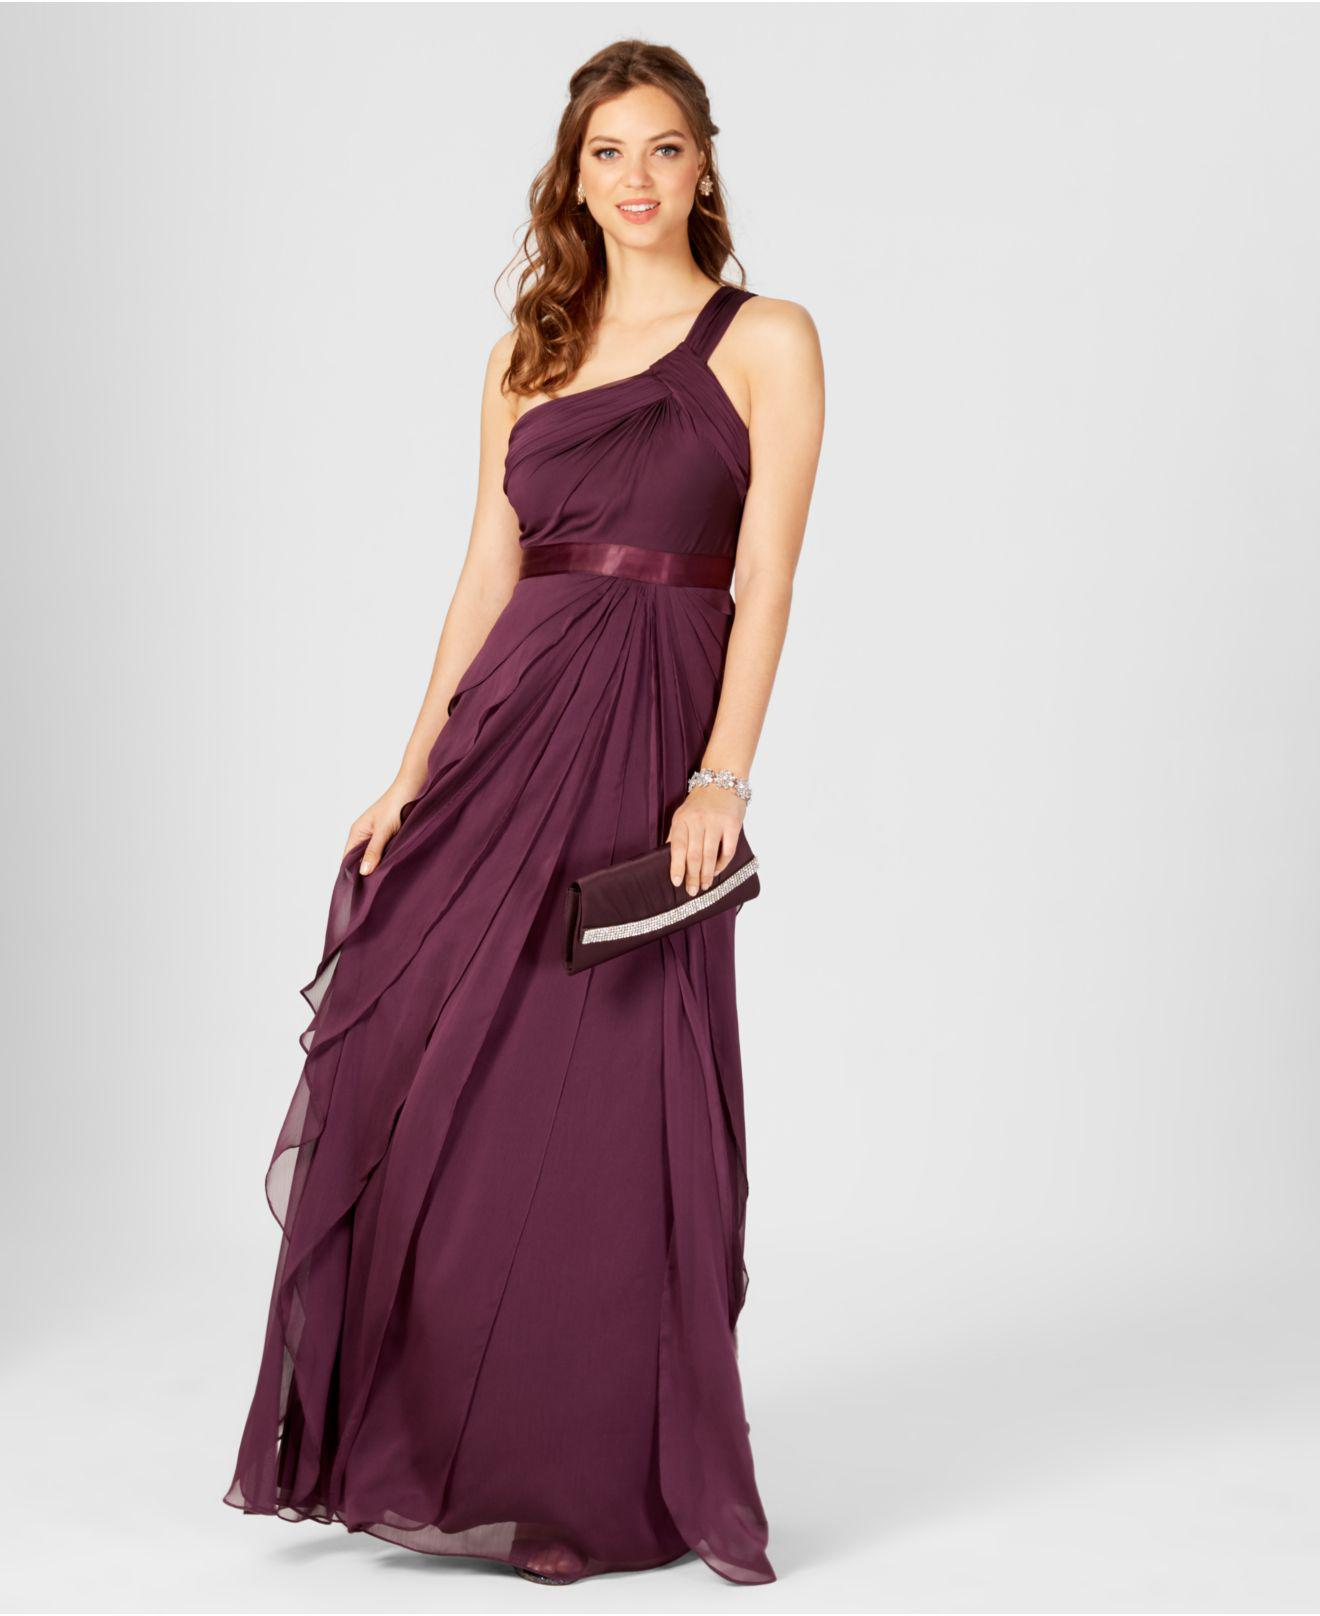 6df8ba981022f Lyst - Adrianna Papell One-shoulder Tiered Chiffon Gown in Purple